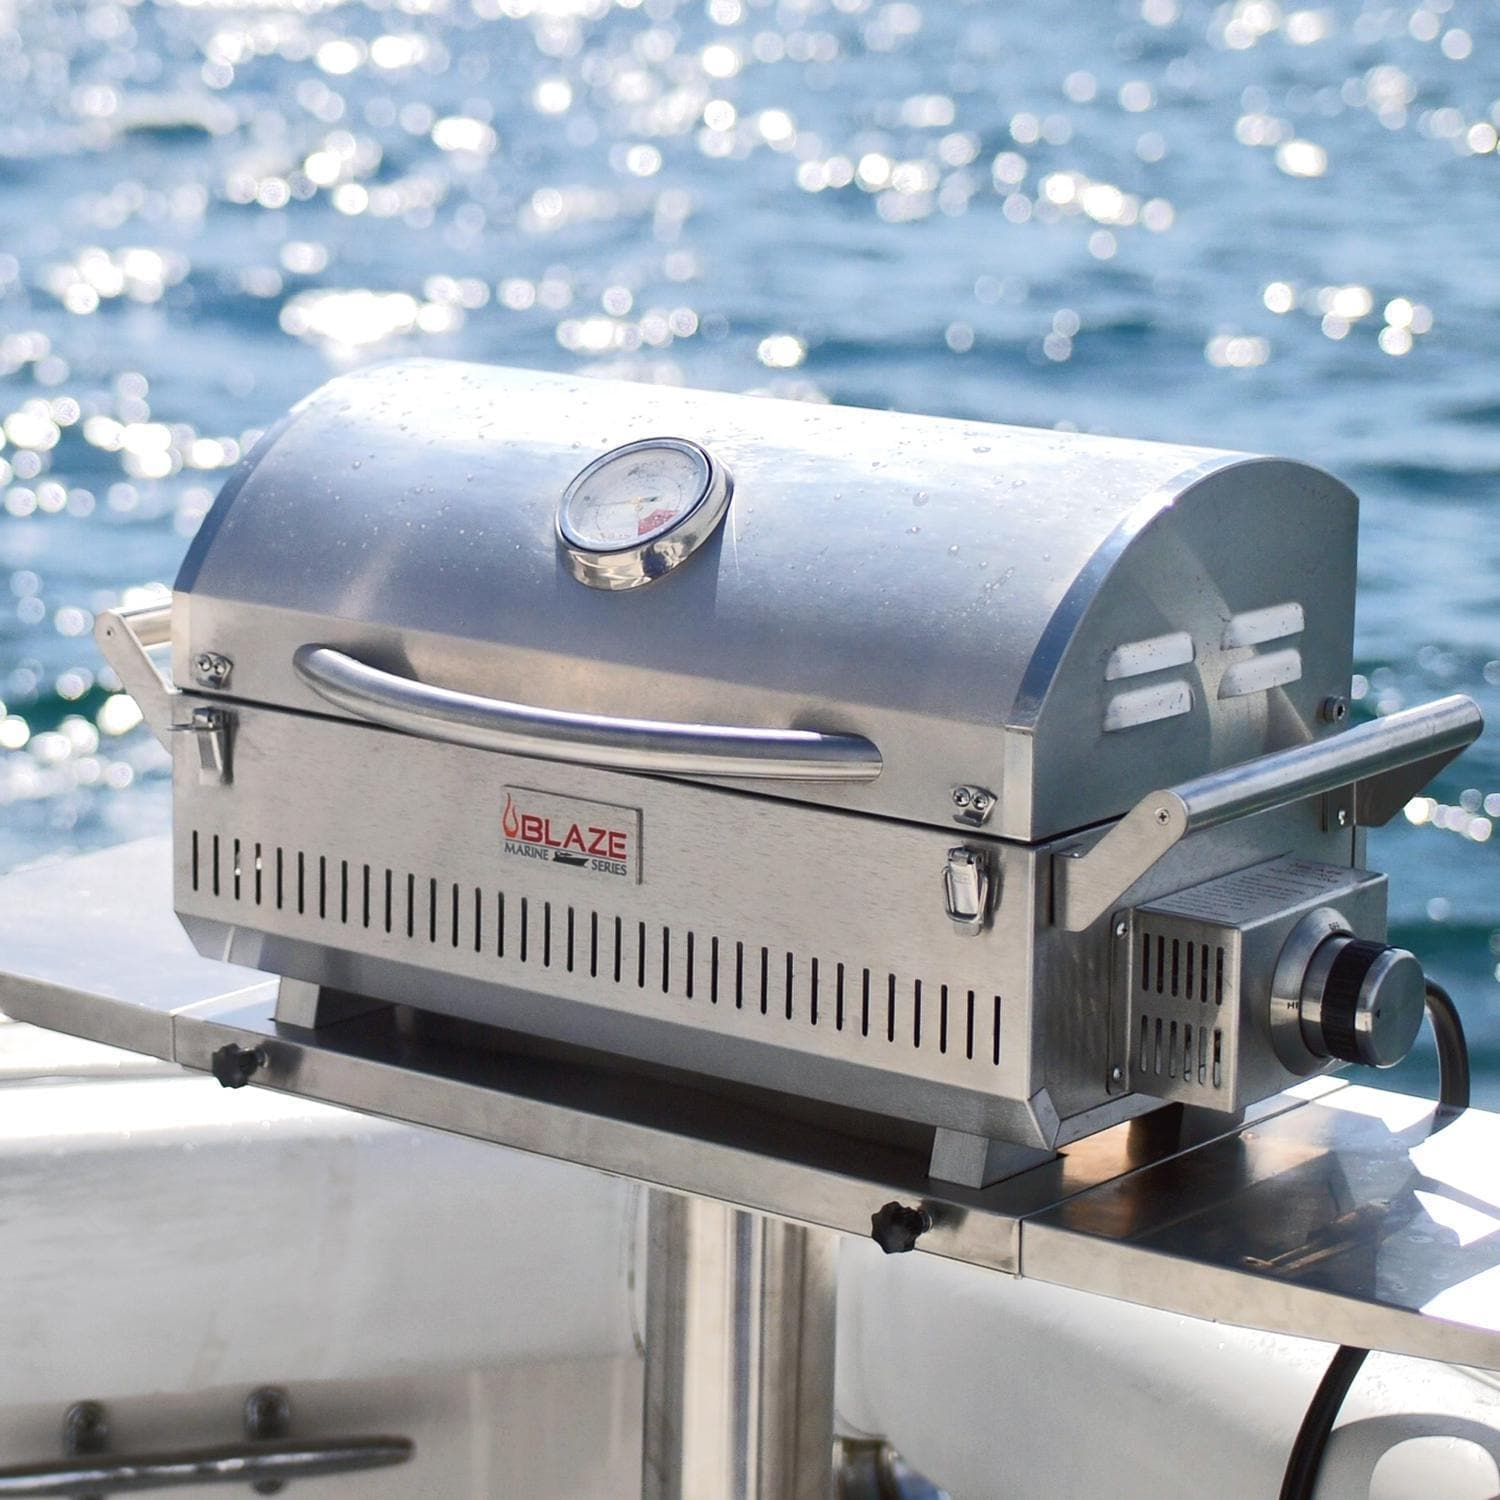 Blaze Professional Marine Grade Portable Propane Gas Grill - BLZ-1PRO-PRTMG-LP Some scratches on the hood. The left side of the body/cookbox is dented,  where the handle attaches. Damage listed does not hinder use. (Stock# 120637-H)